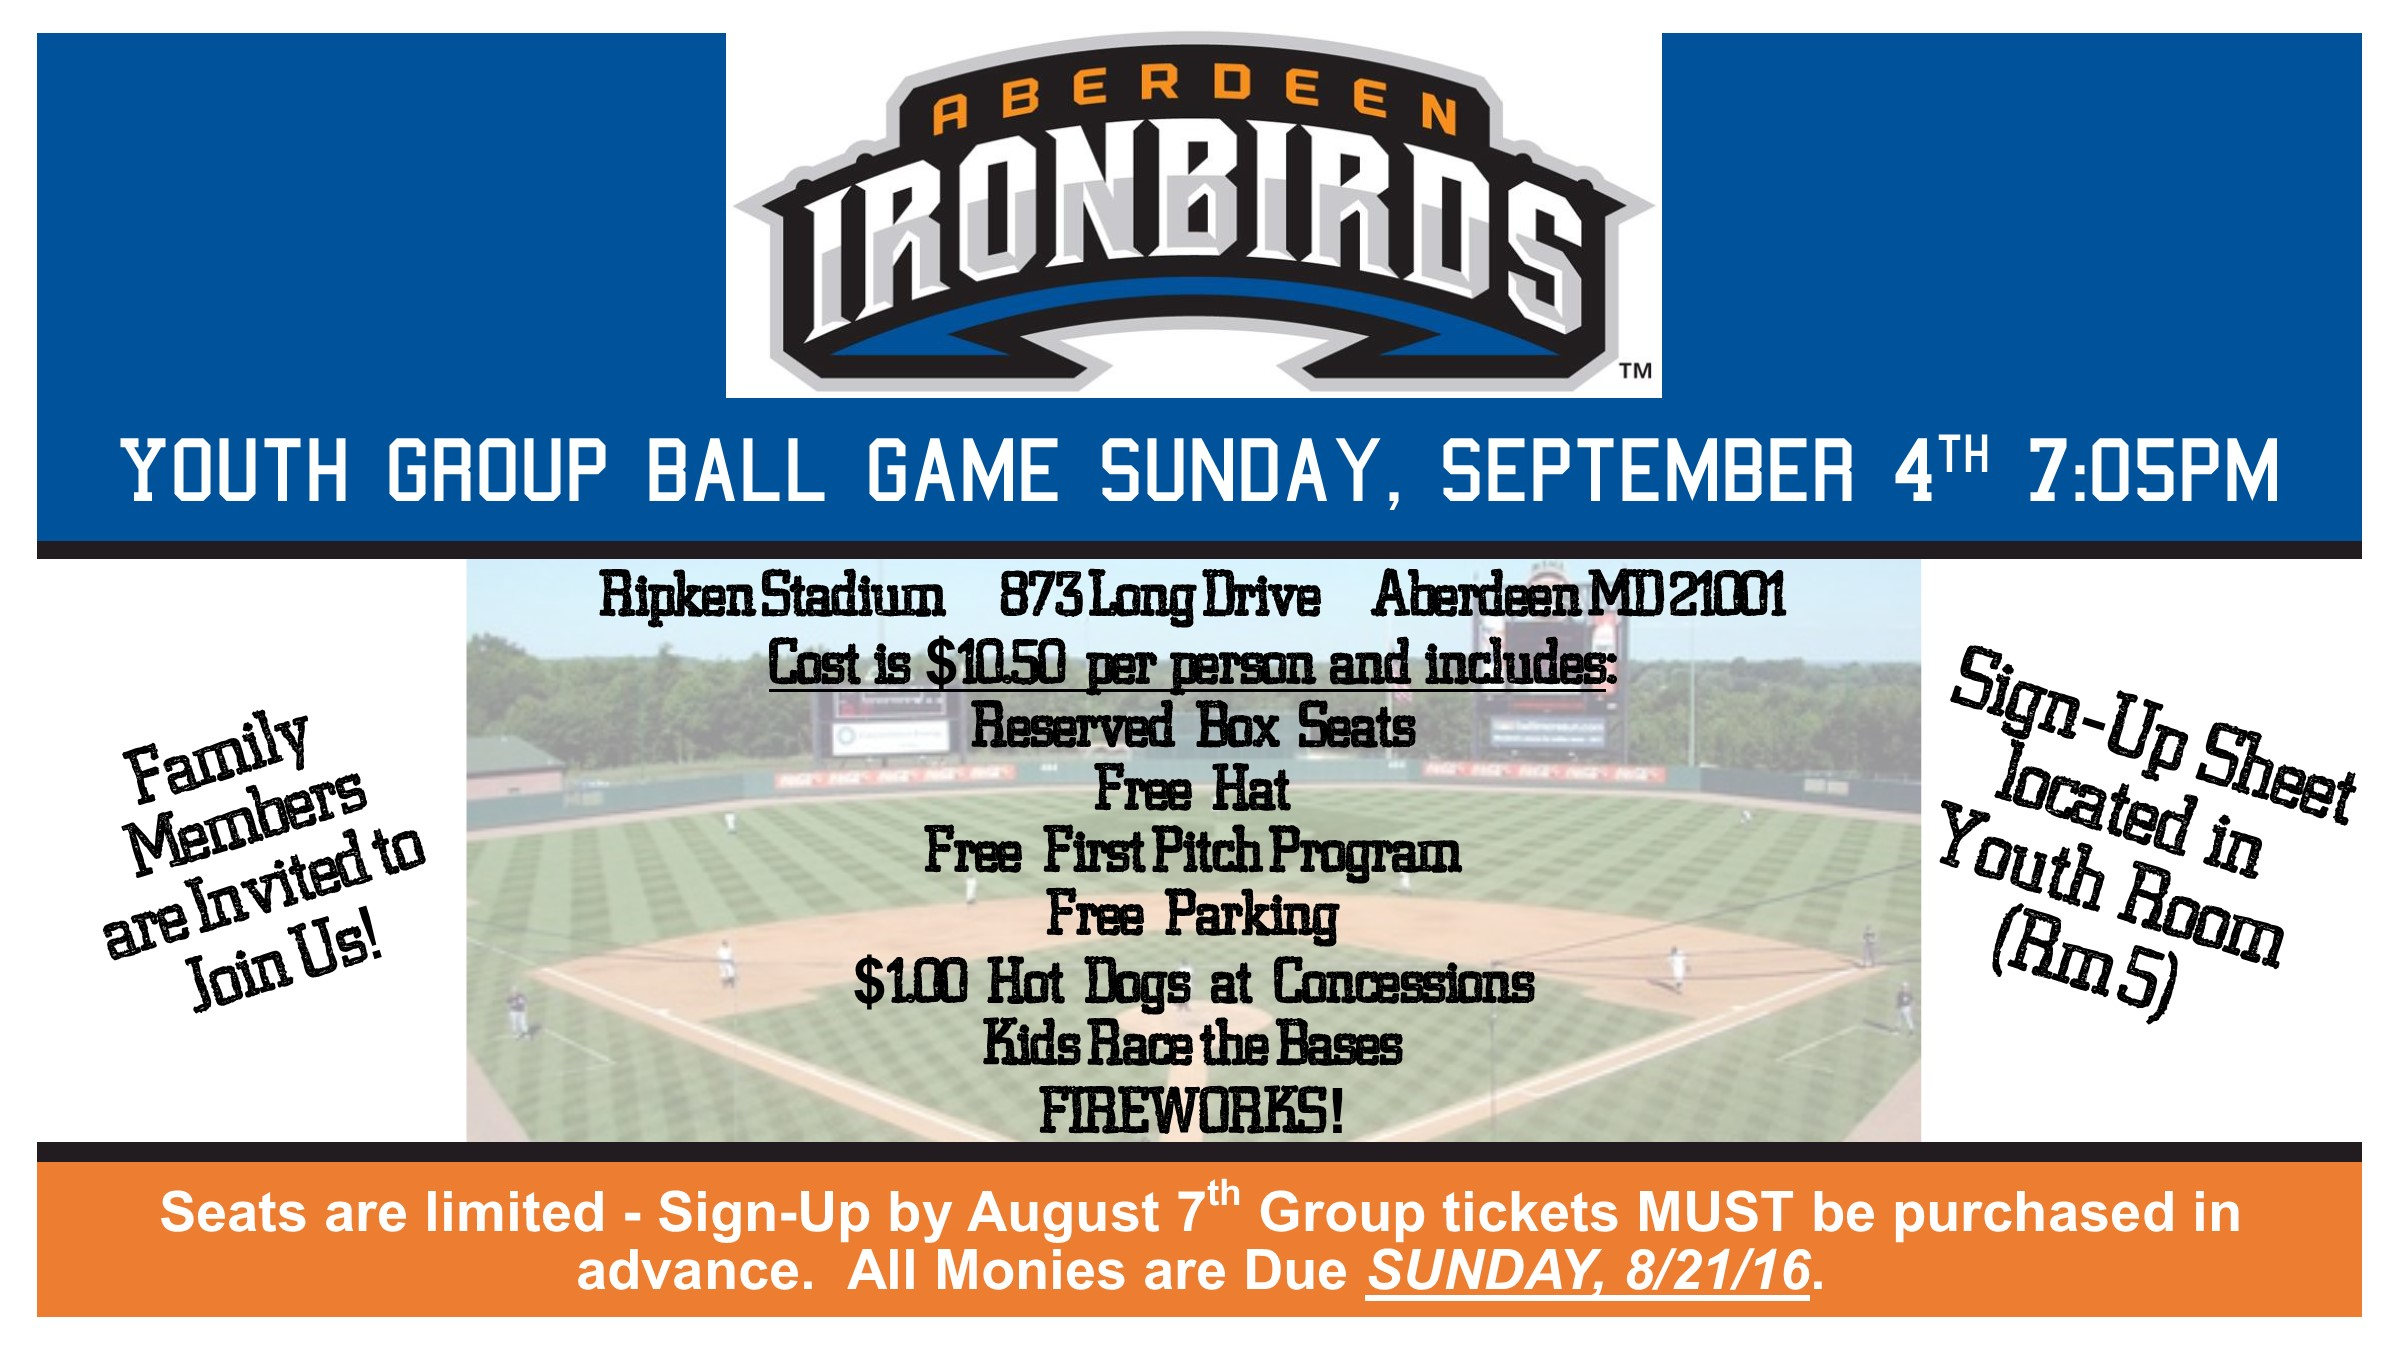 YG Ironbirds 9-04-16 EW-Web.jpg